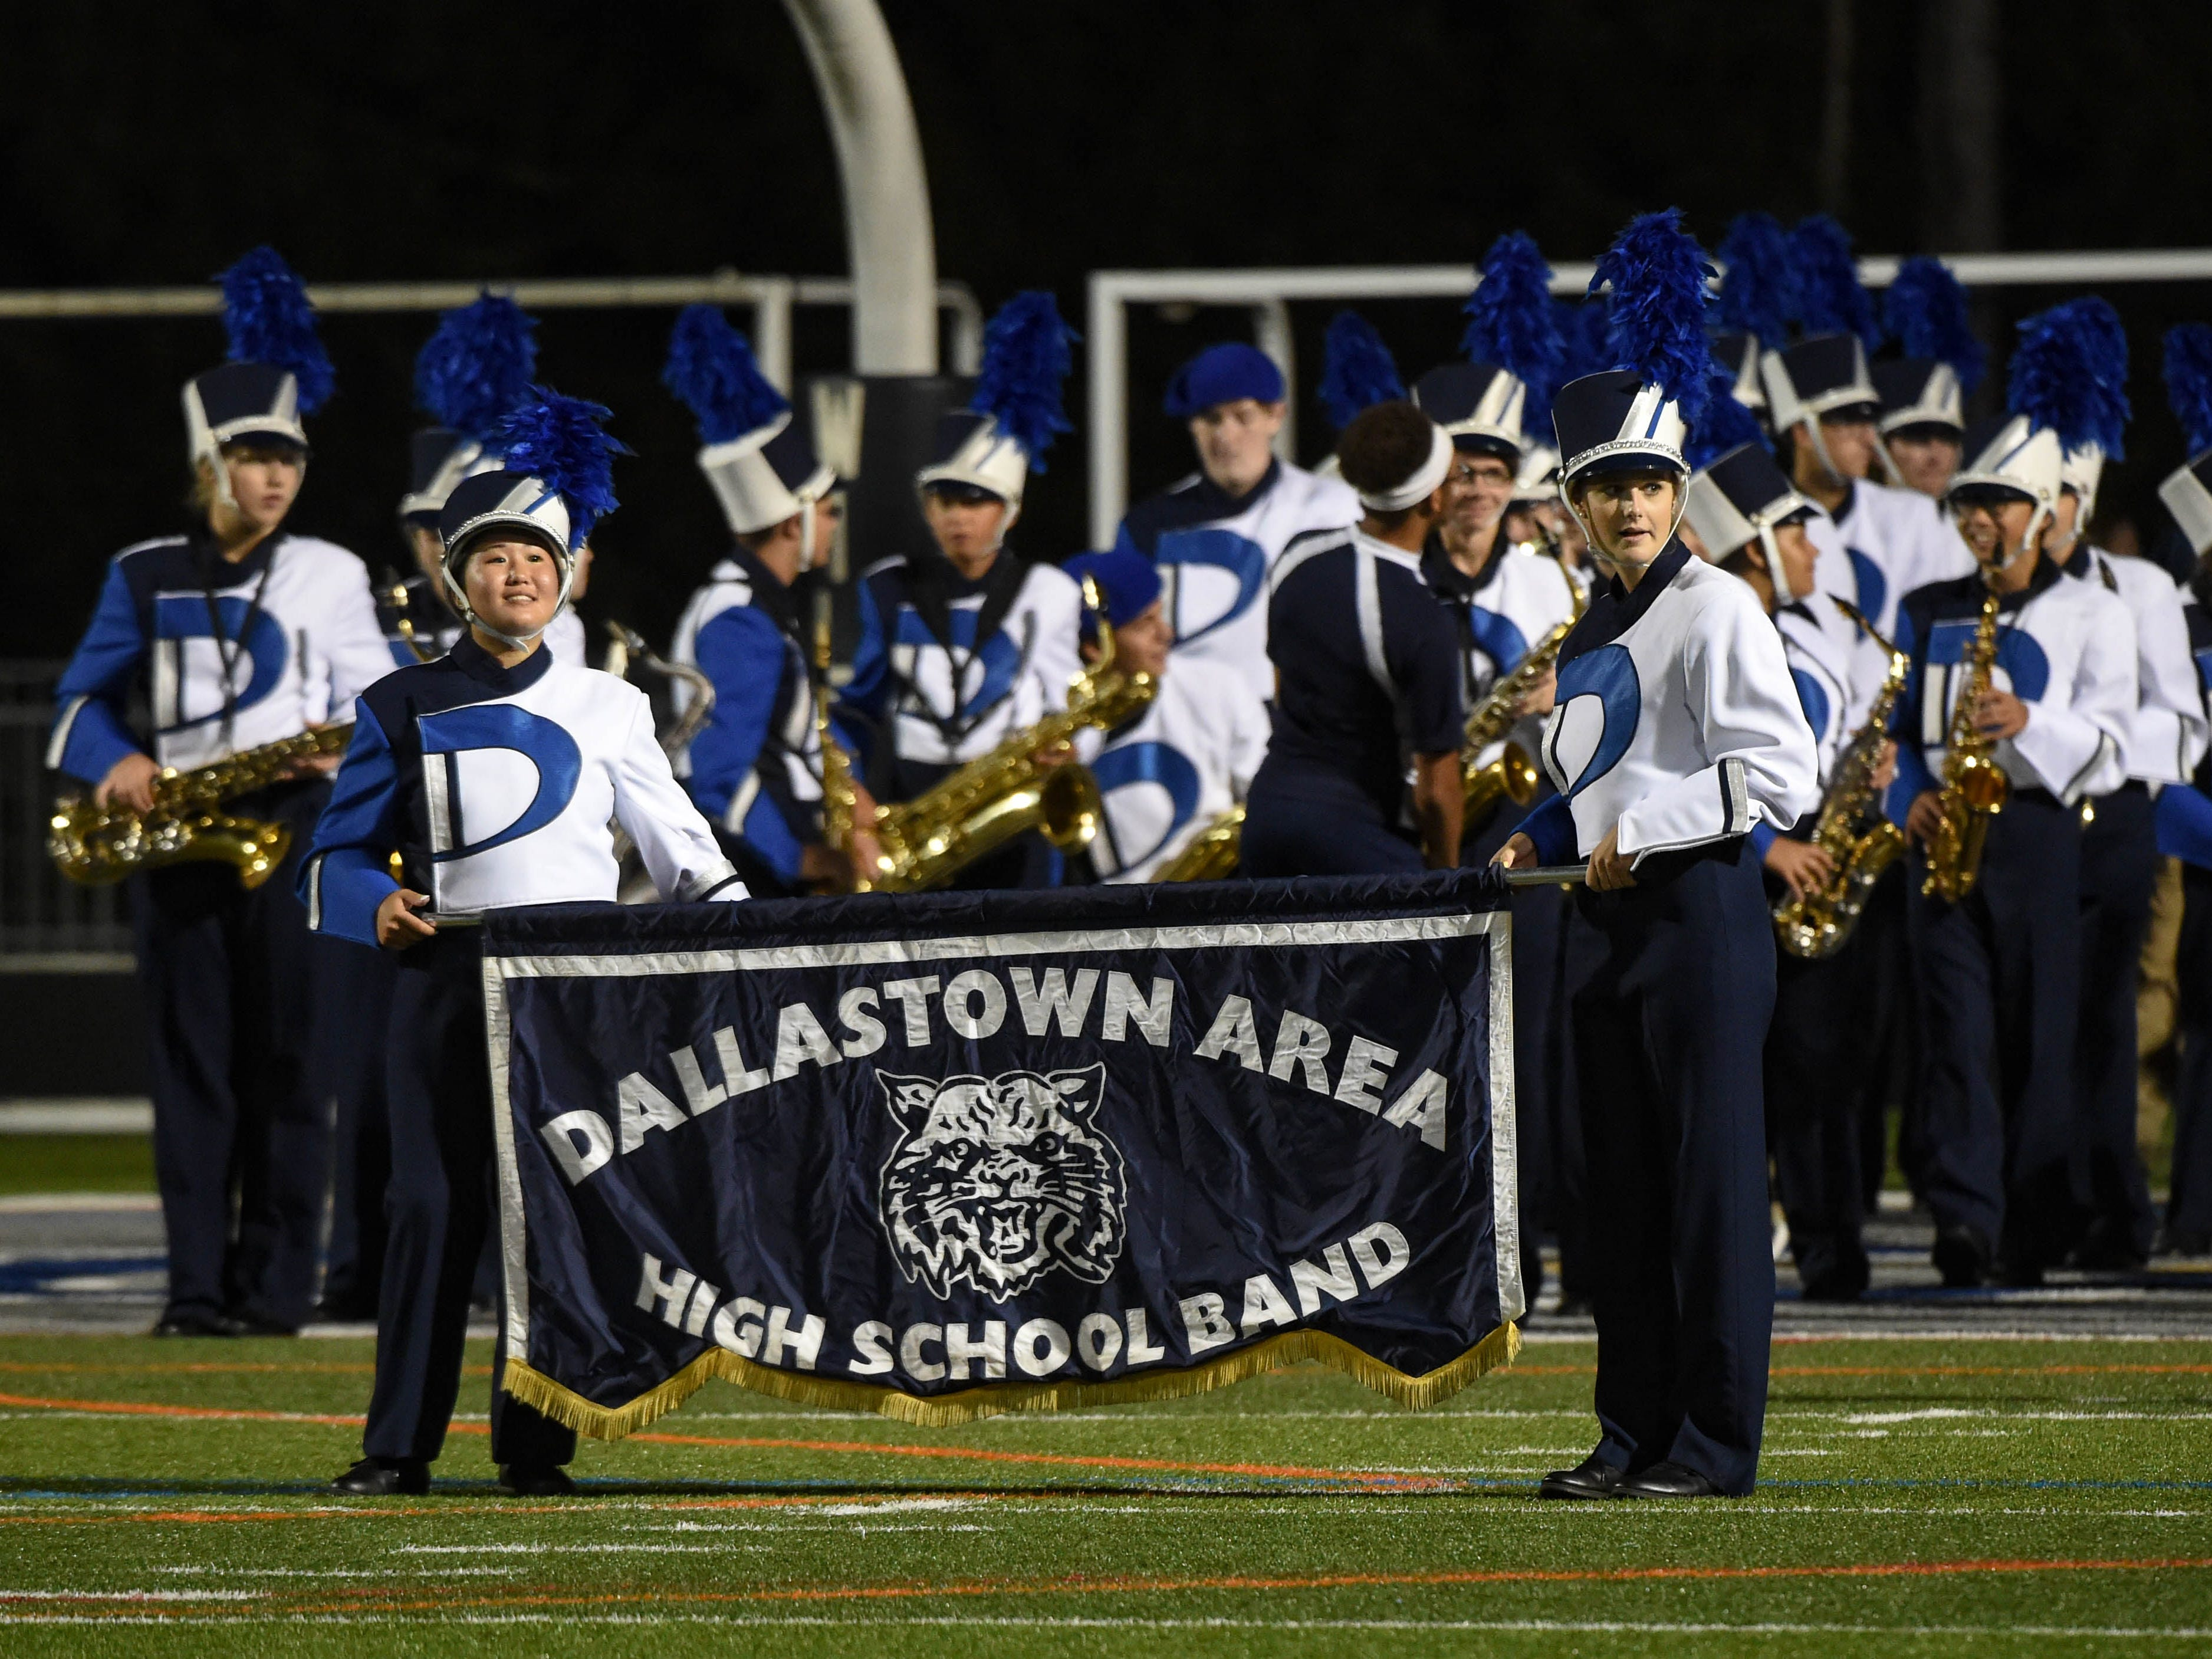 Dallastown's band prepares to take the field after the game to give spectators one last show before they drive home.